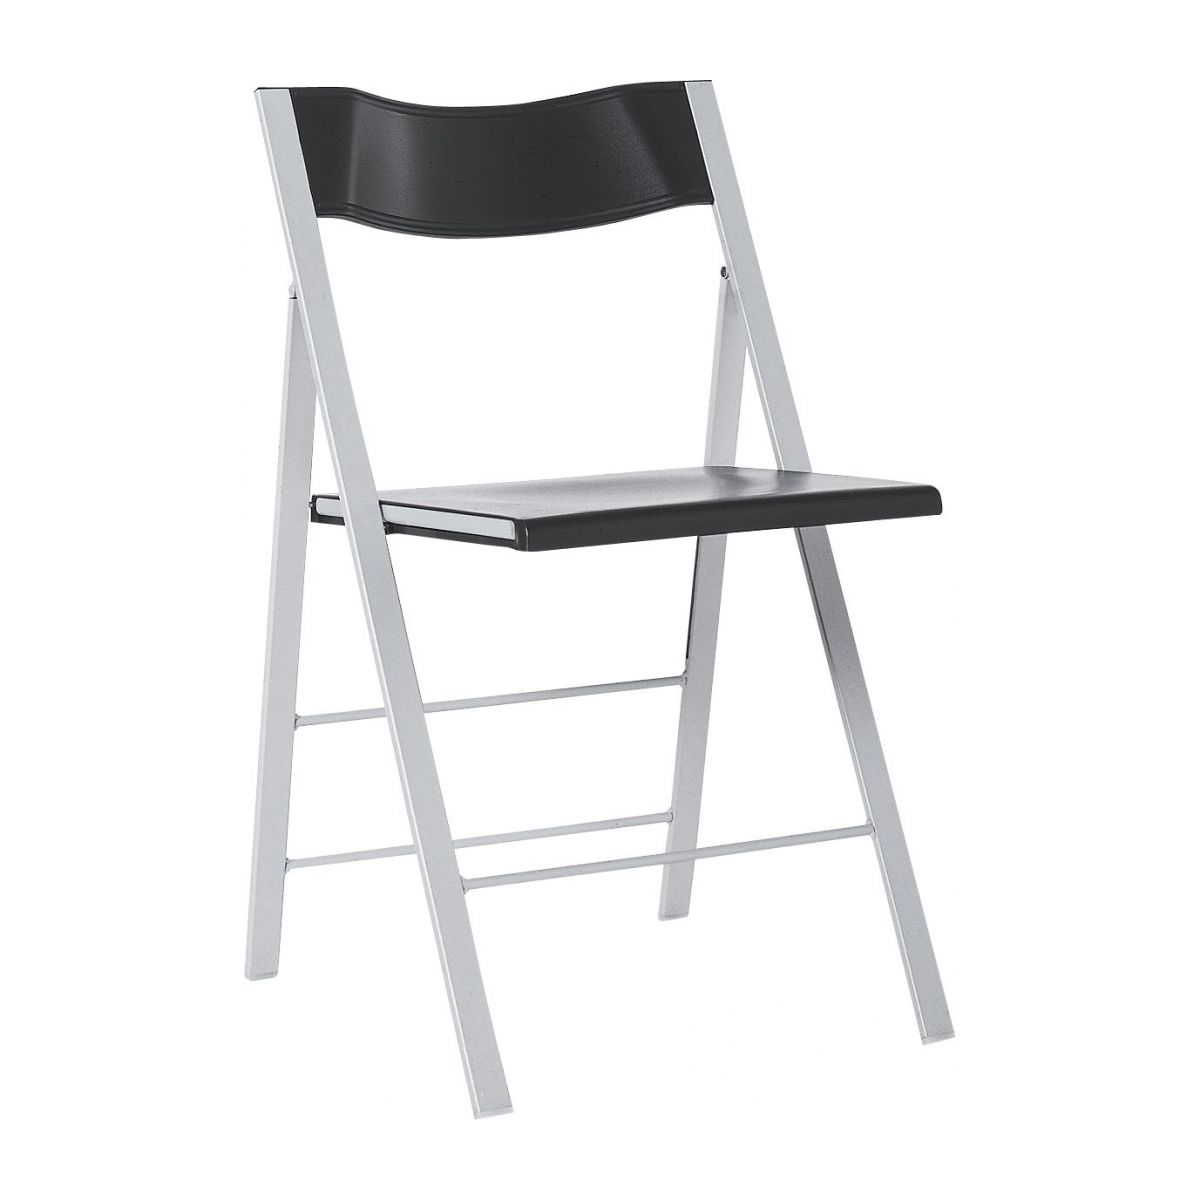 folding chair lulu living room accent chairs under 200 and charcoal metal plastic habitat n 1